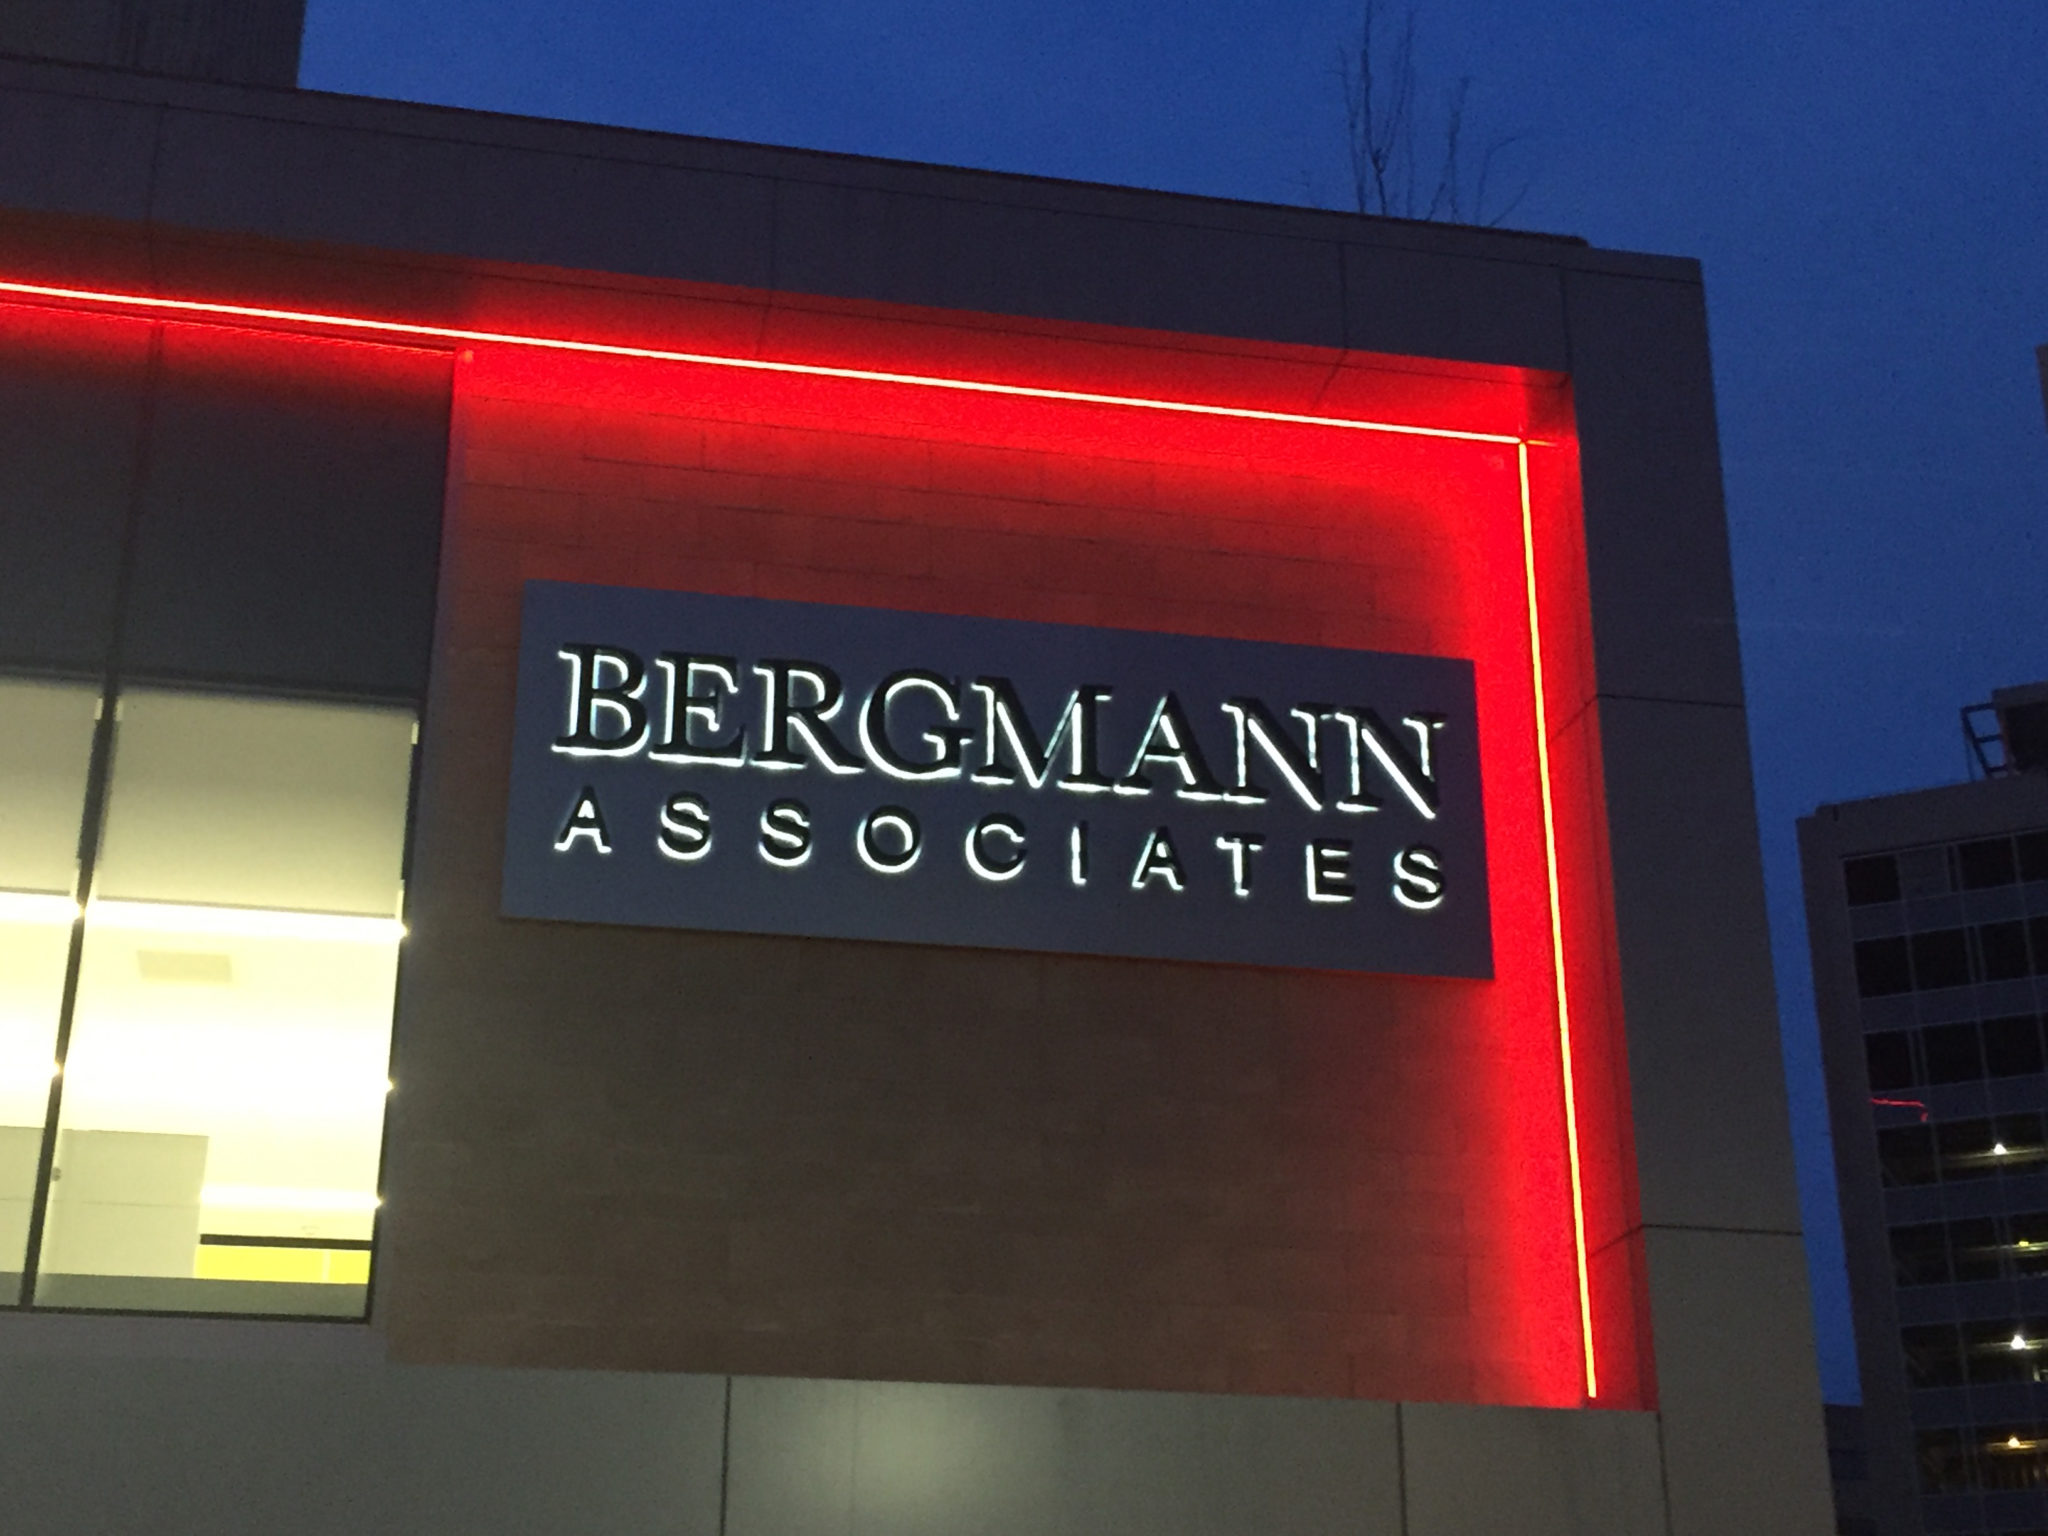 Bergmann Associates Outdoor Sign